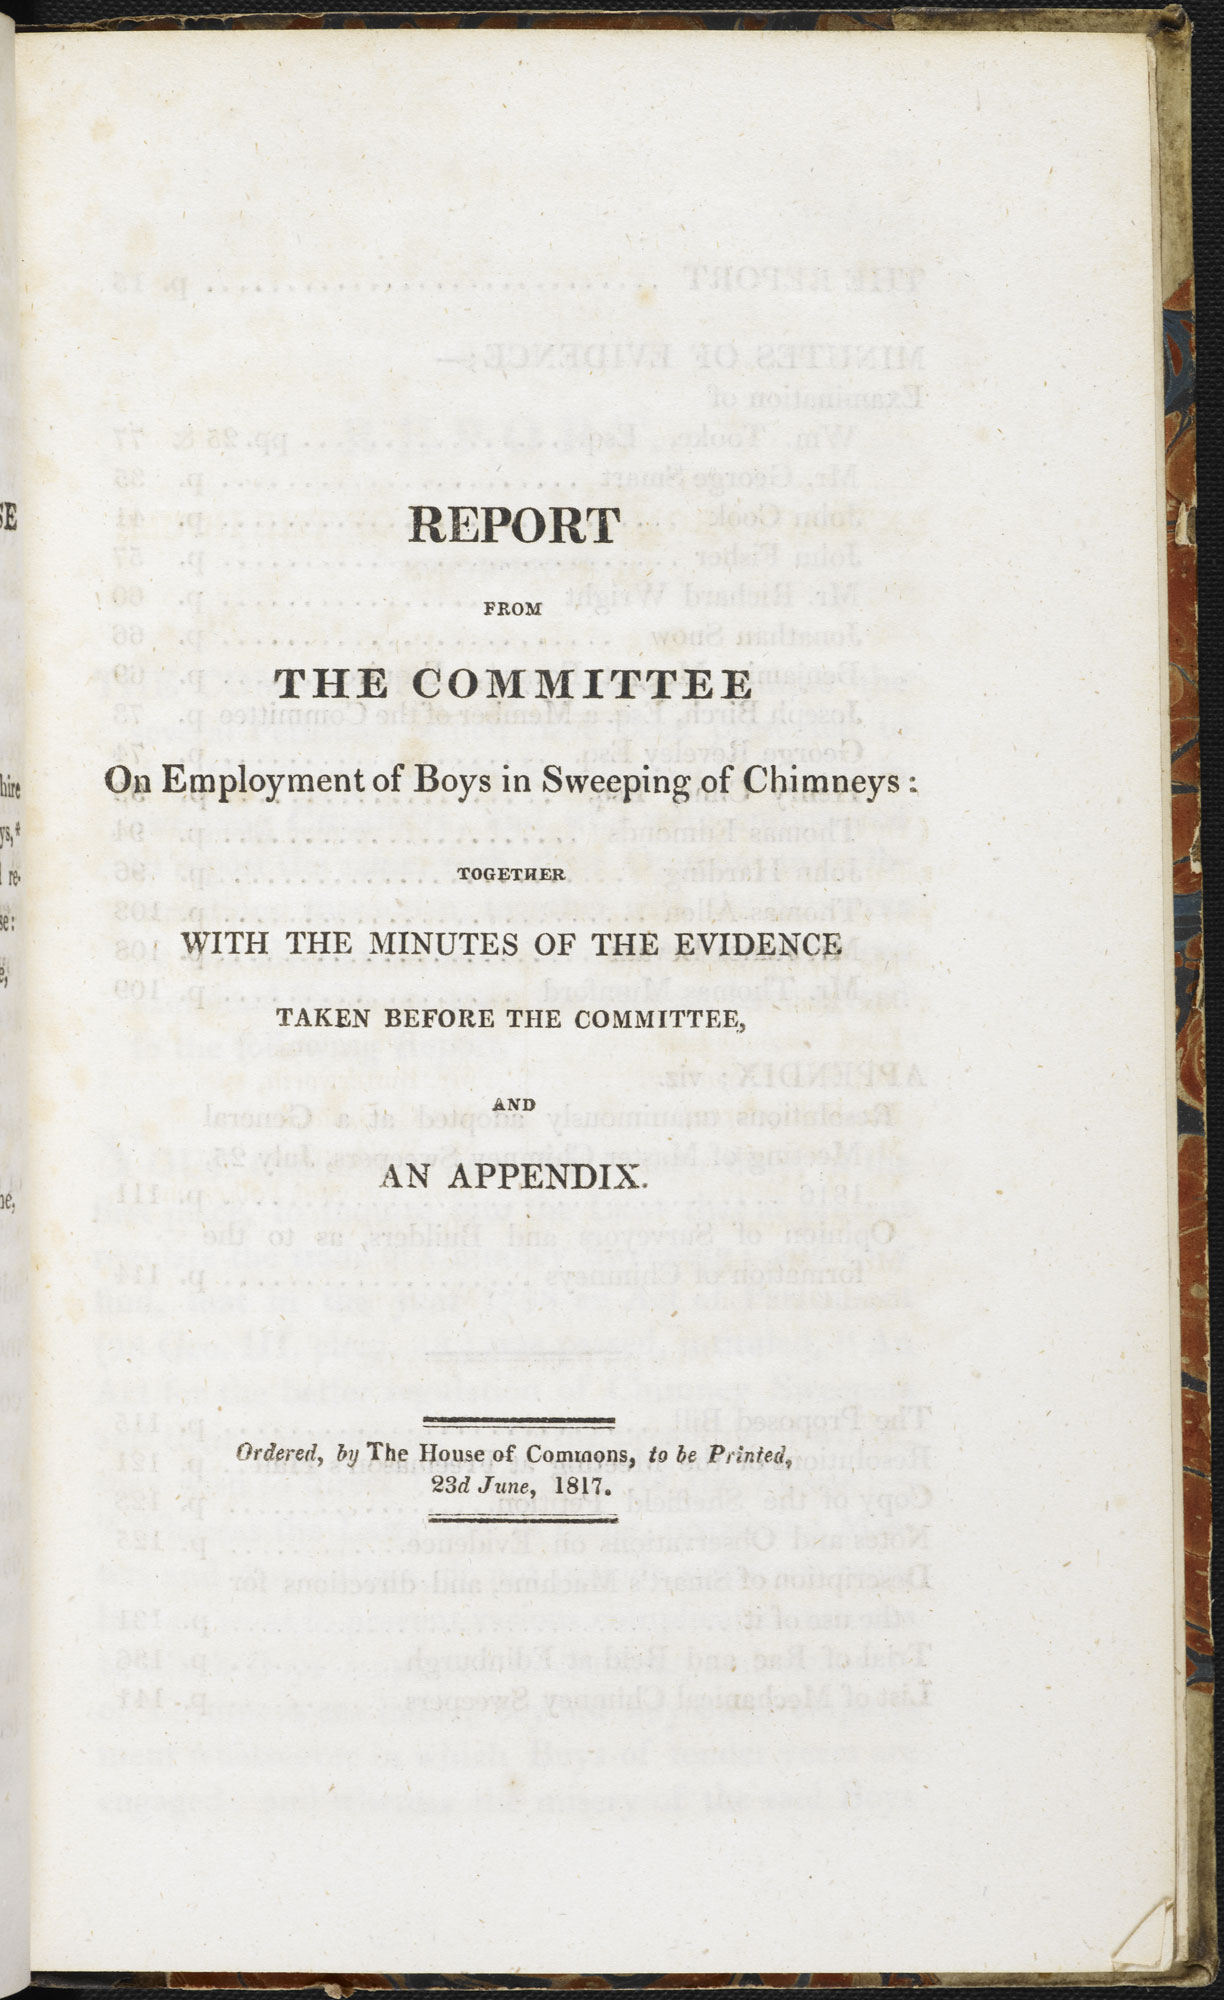 Report into employing boys as chimney sweeps [page: 15]